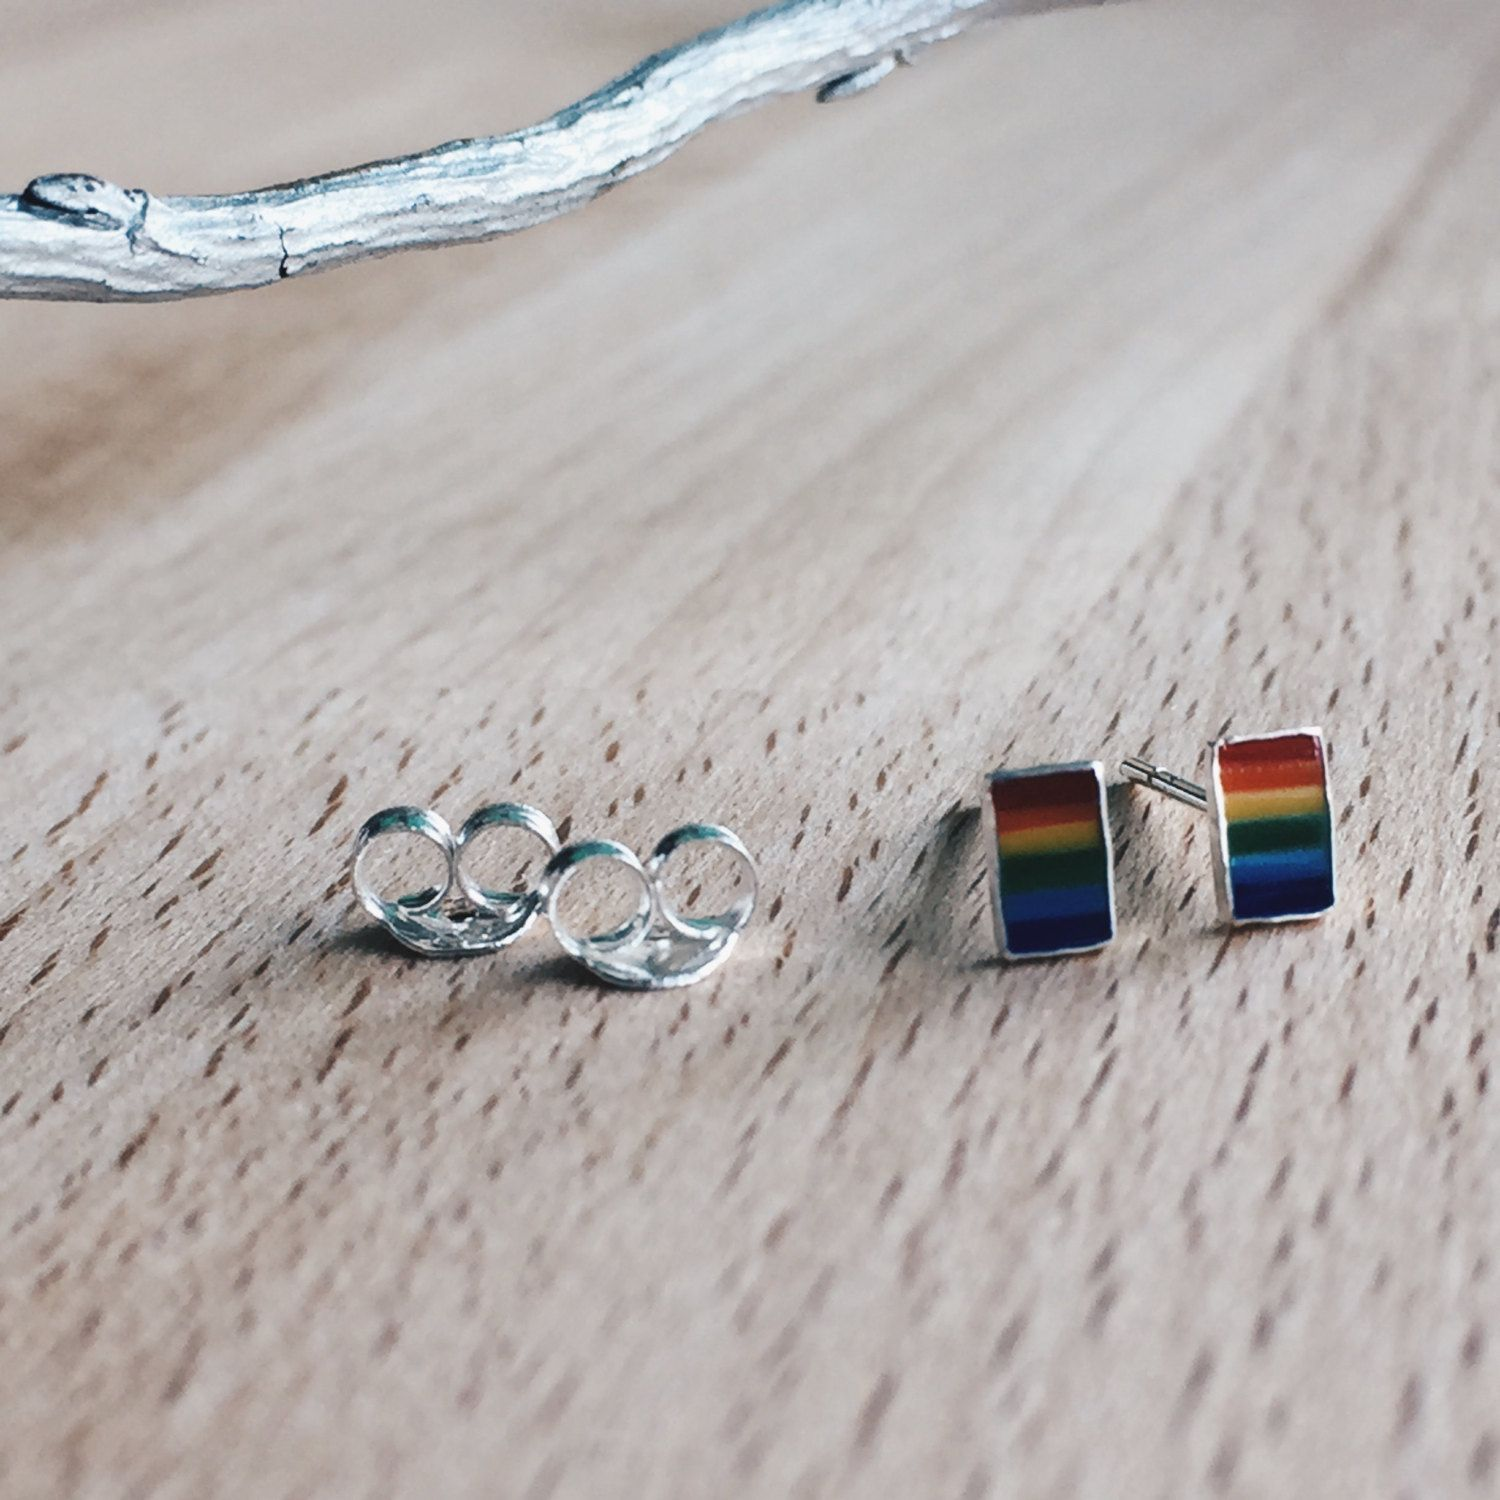 Rainbow bar ear studs, Sterling silver rainbow studs, Rainbow cartilage stud, Tiny rainbow bar earrings, Cute rainbow earrings by SilverCartel on Etsy